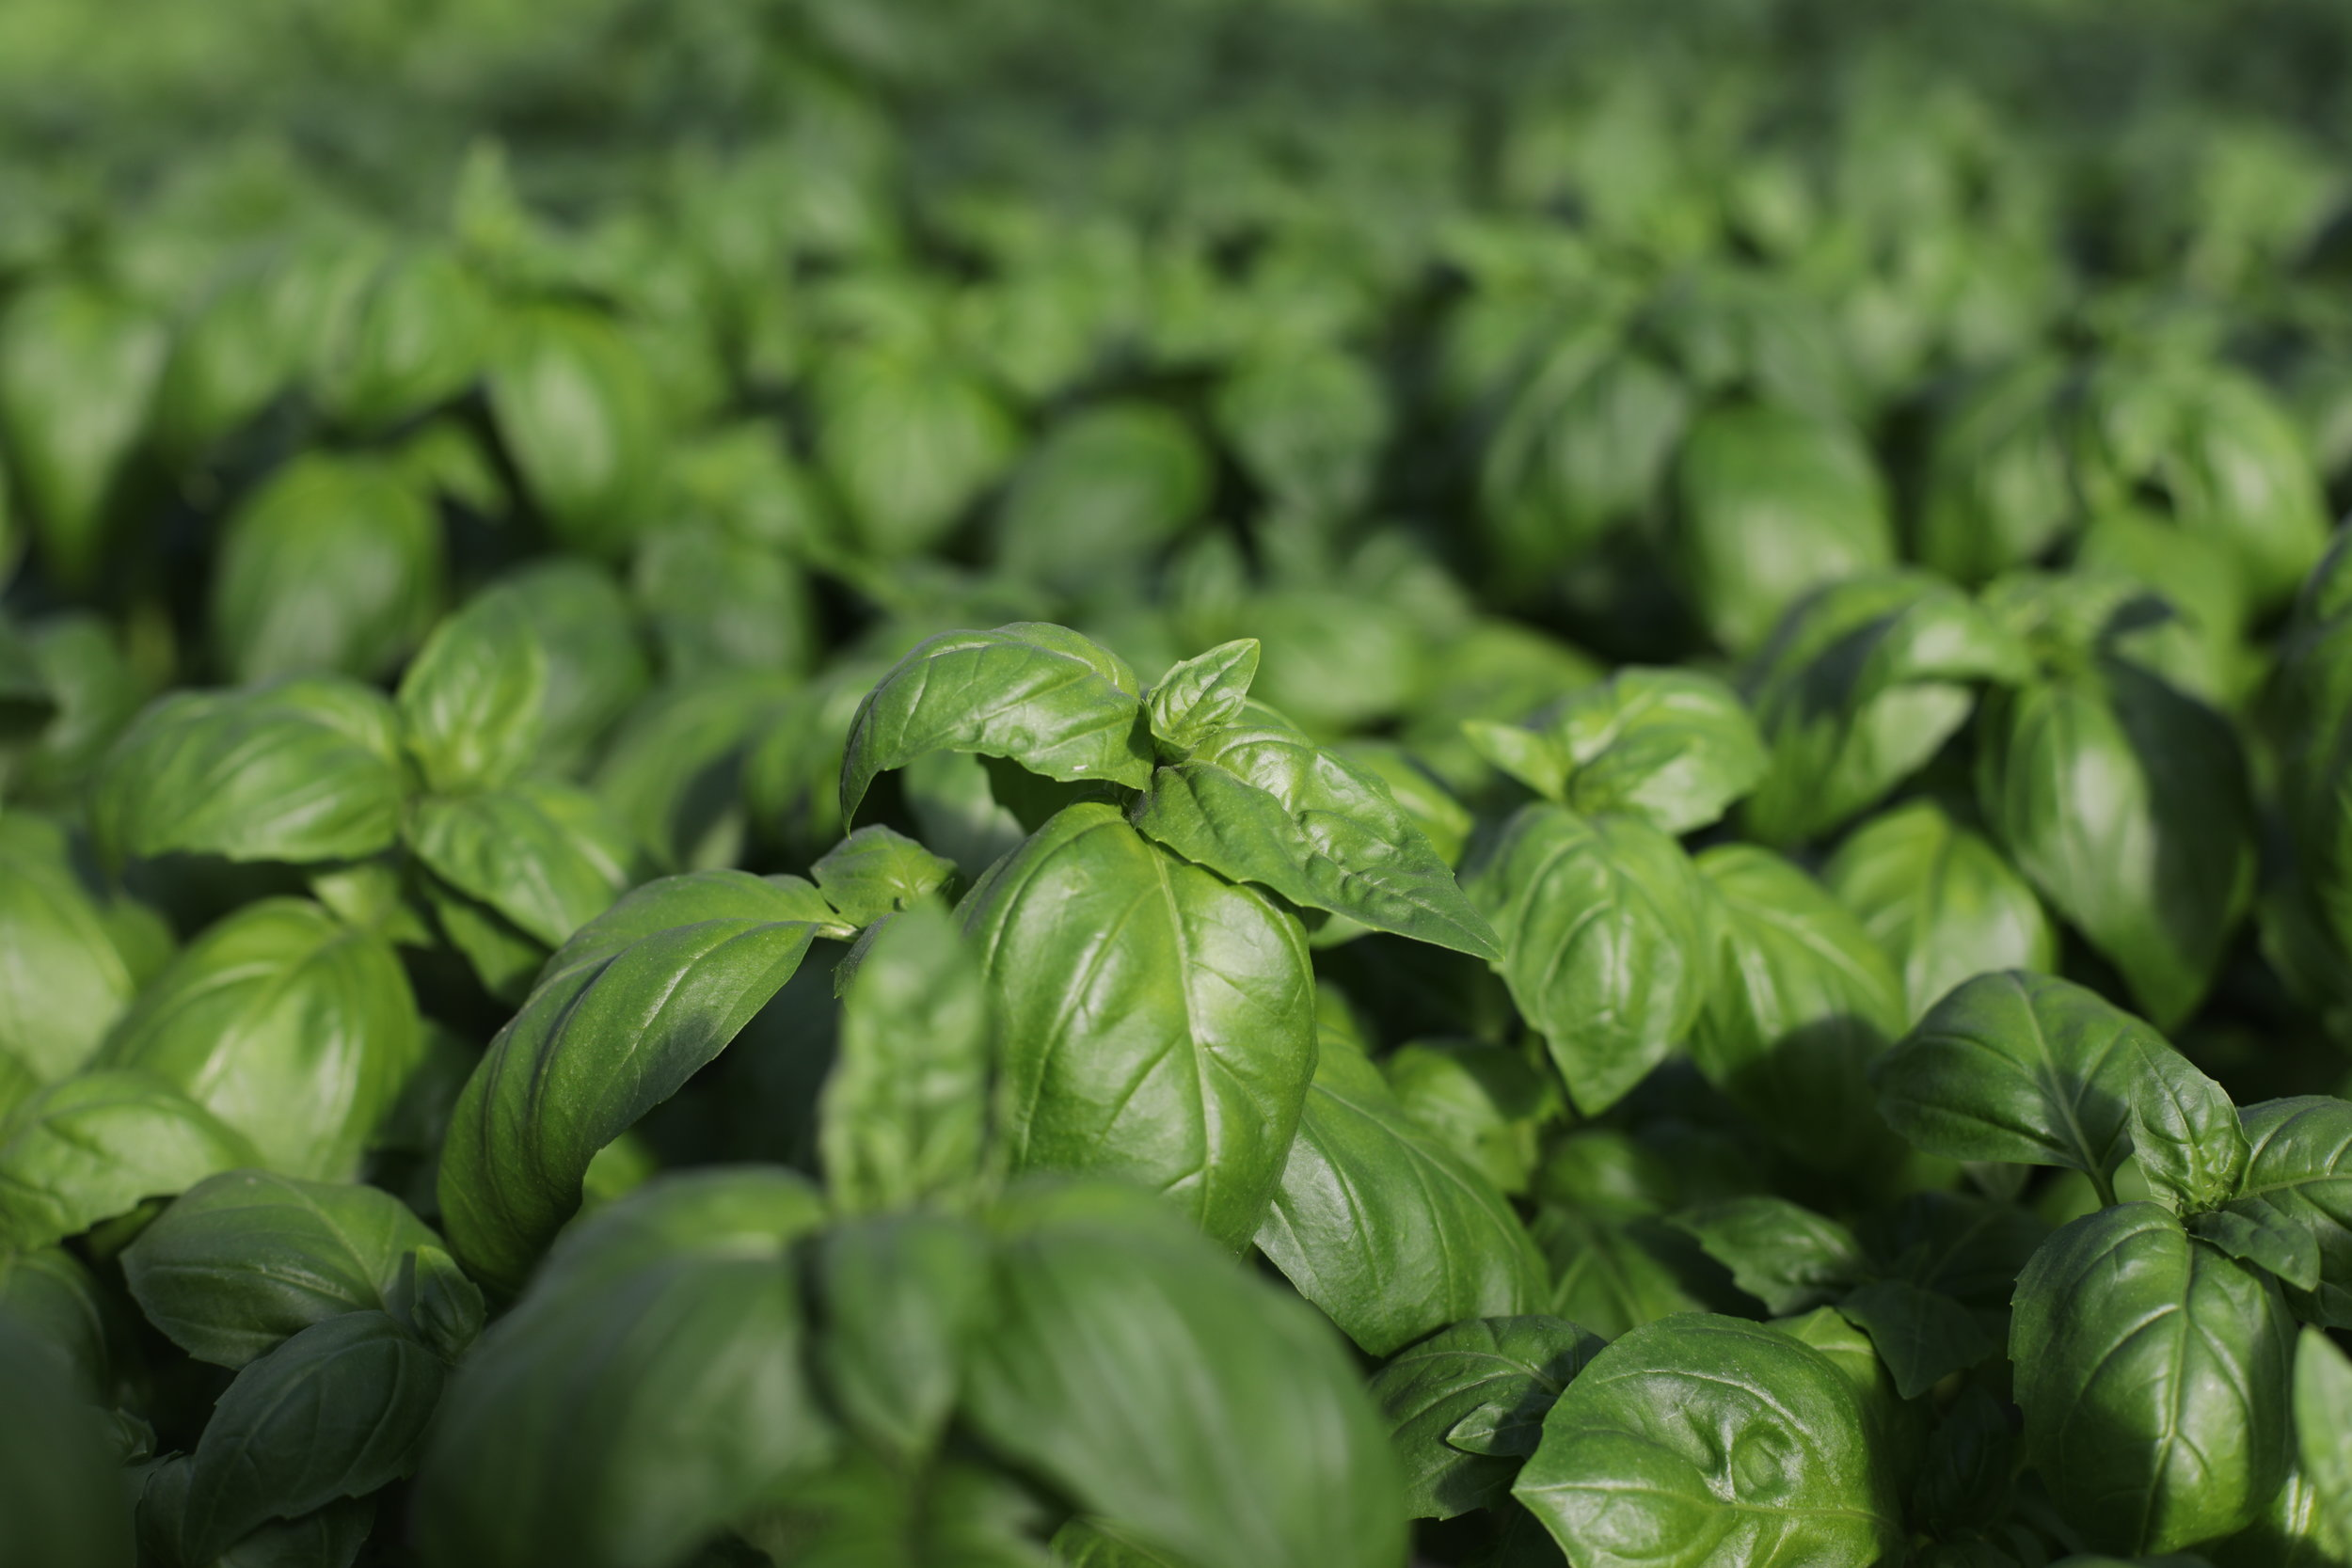 The beauty of hydroponic basil at Gotham Greens on their rooftop greenhouse farm in Greenpoint, Brooklyn.